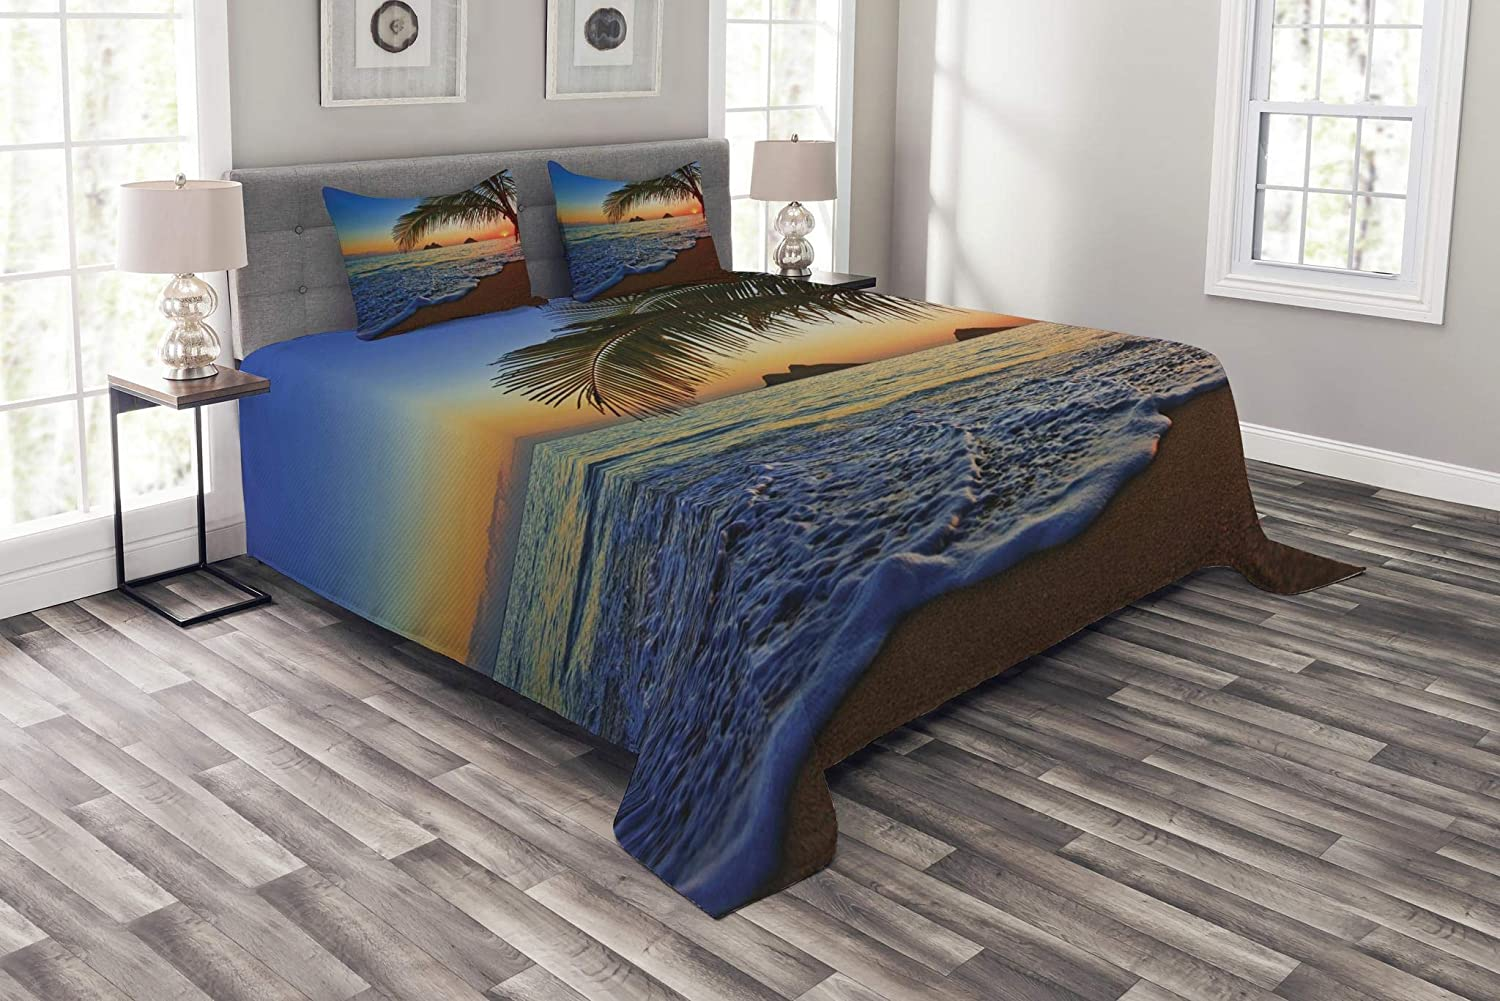 Ambesonne Hawaiian Bedspread, Pacific Sunrise at Lanikai Beach Hawaii Colorful Sky Wavy Ocean Surface Scene, Decorative Quilted 3 Piece Coverlet Set with 2 Pillow Shams, Queen Size, Blue Ivory